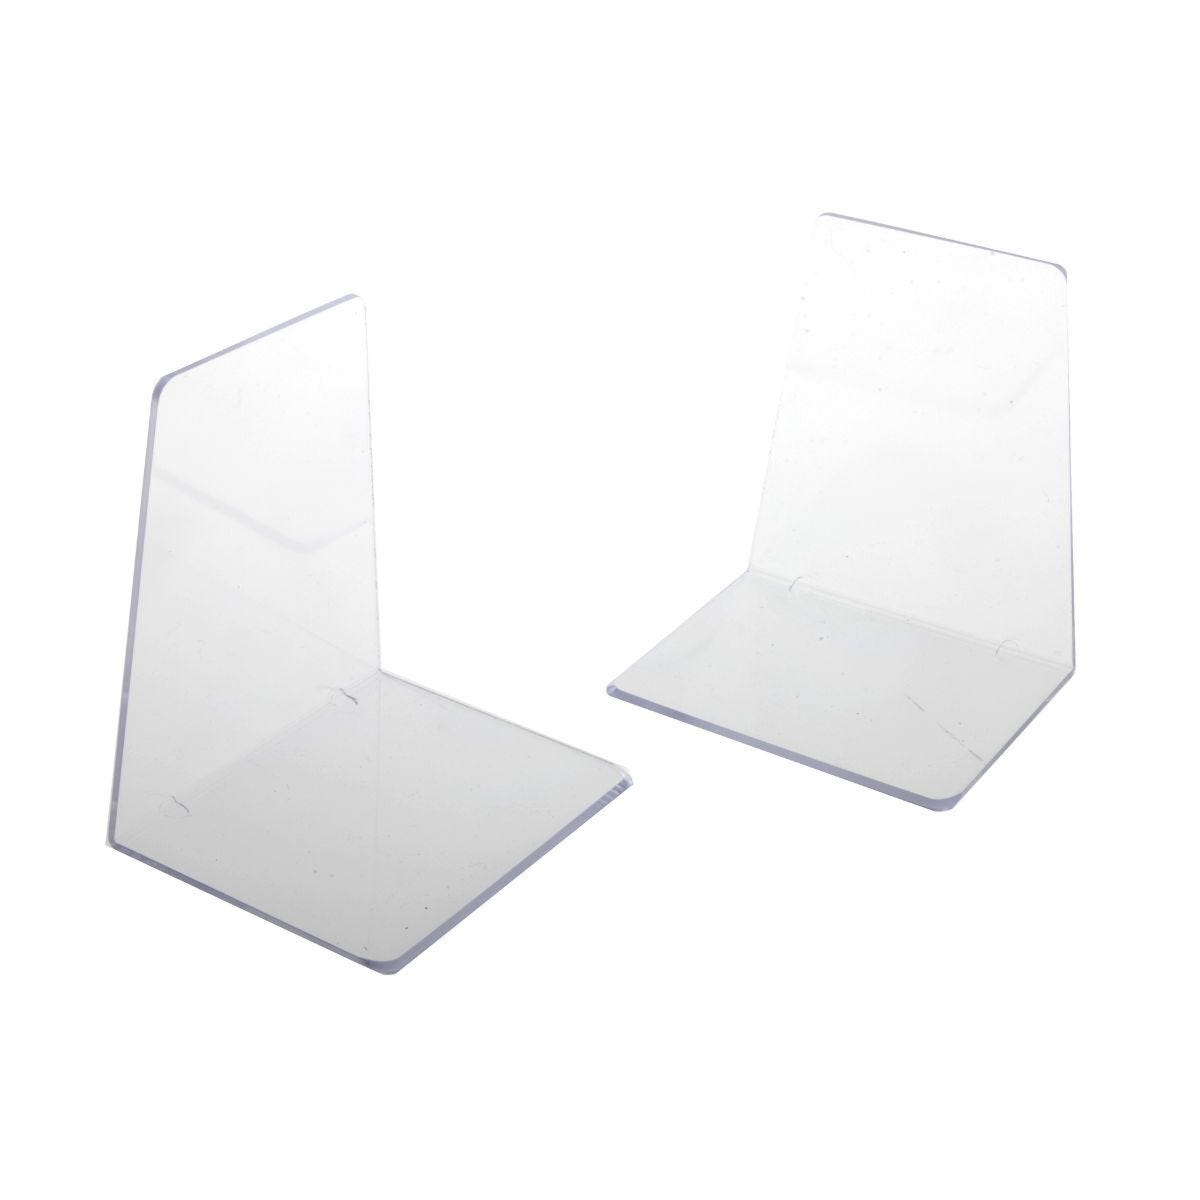 Ryman  Bookends Acrylic Pack of 2